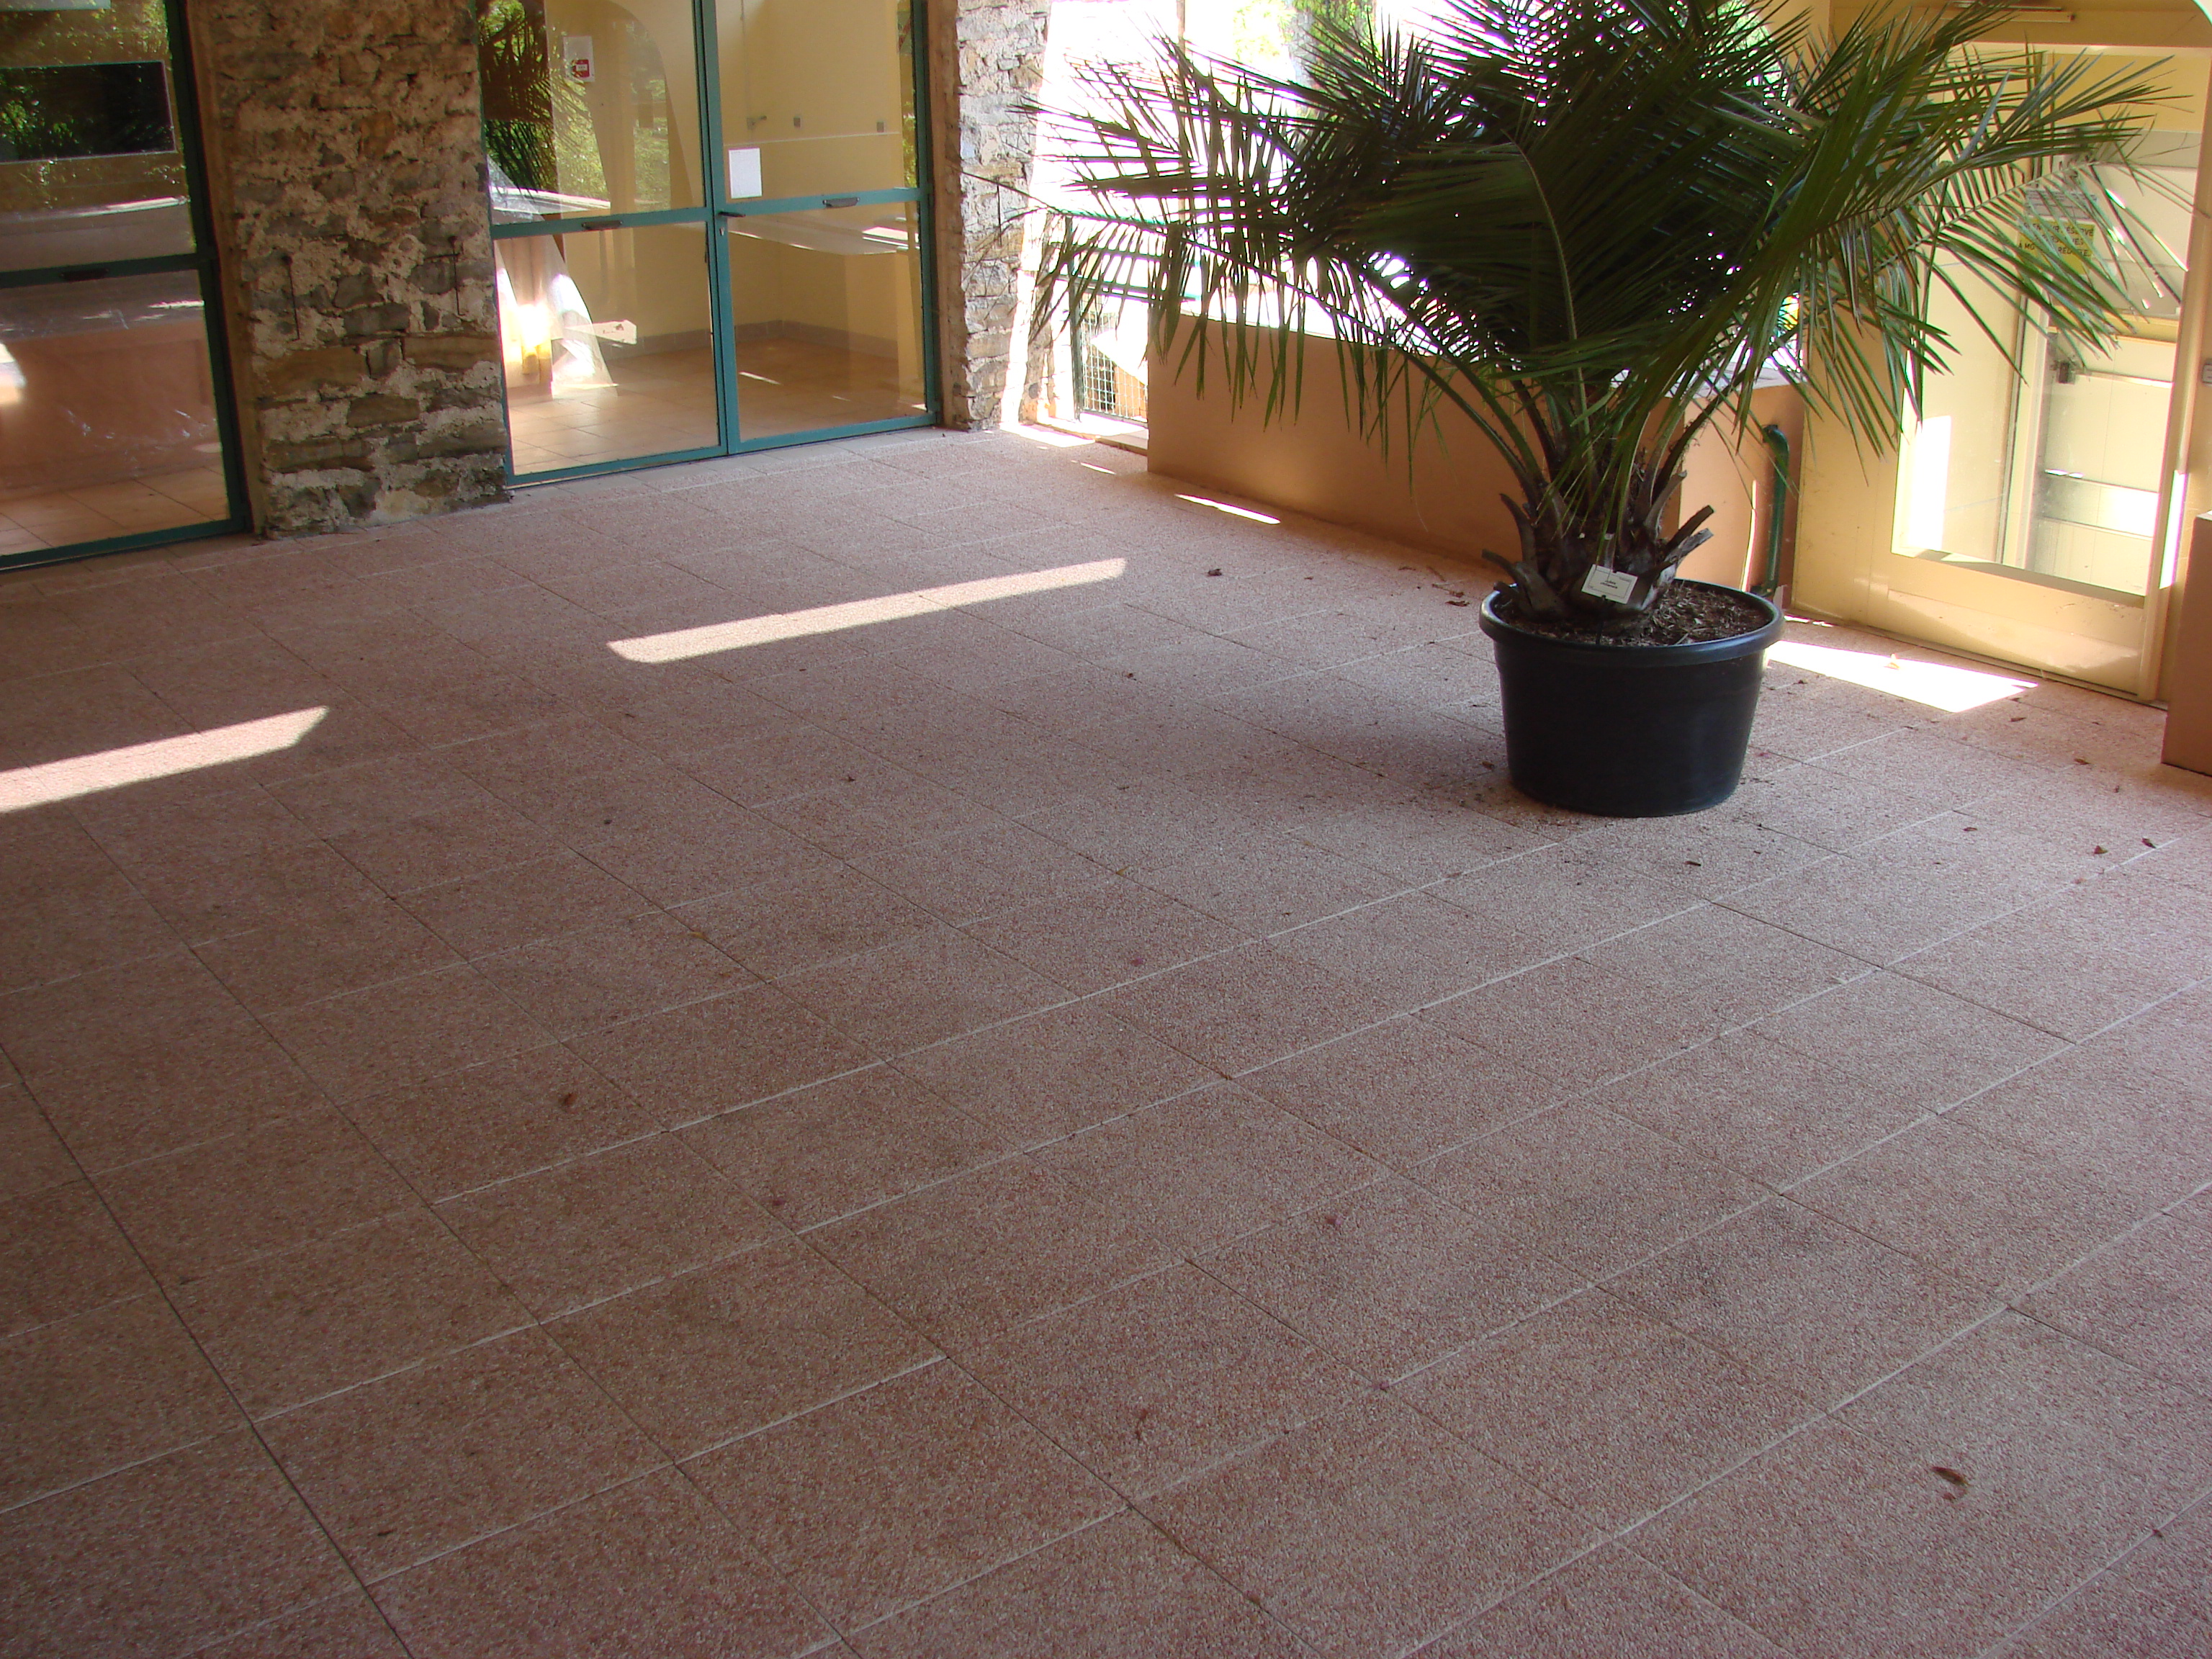 catalogue cmp carrelagecmp carrelage